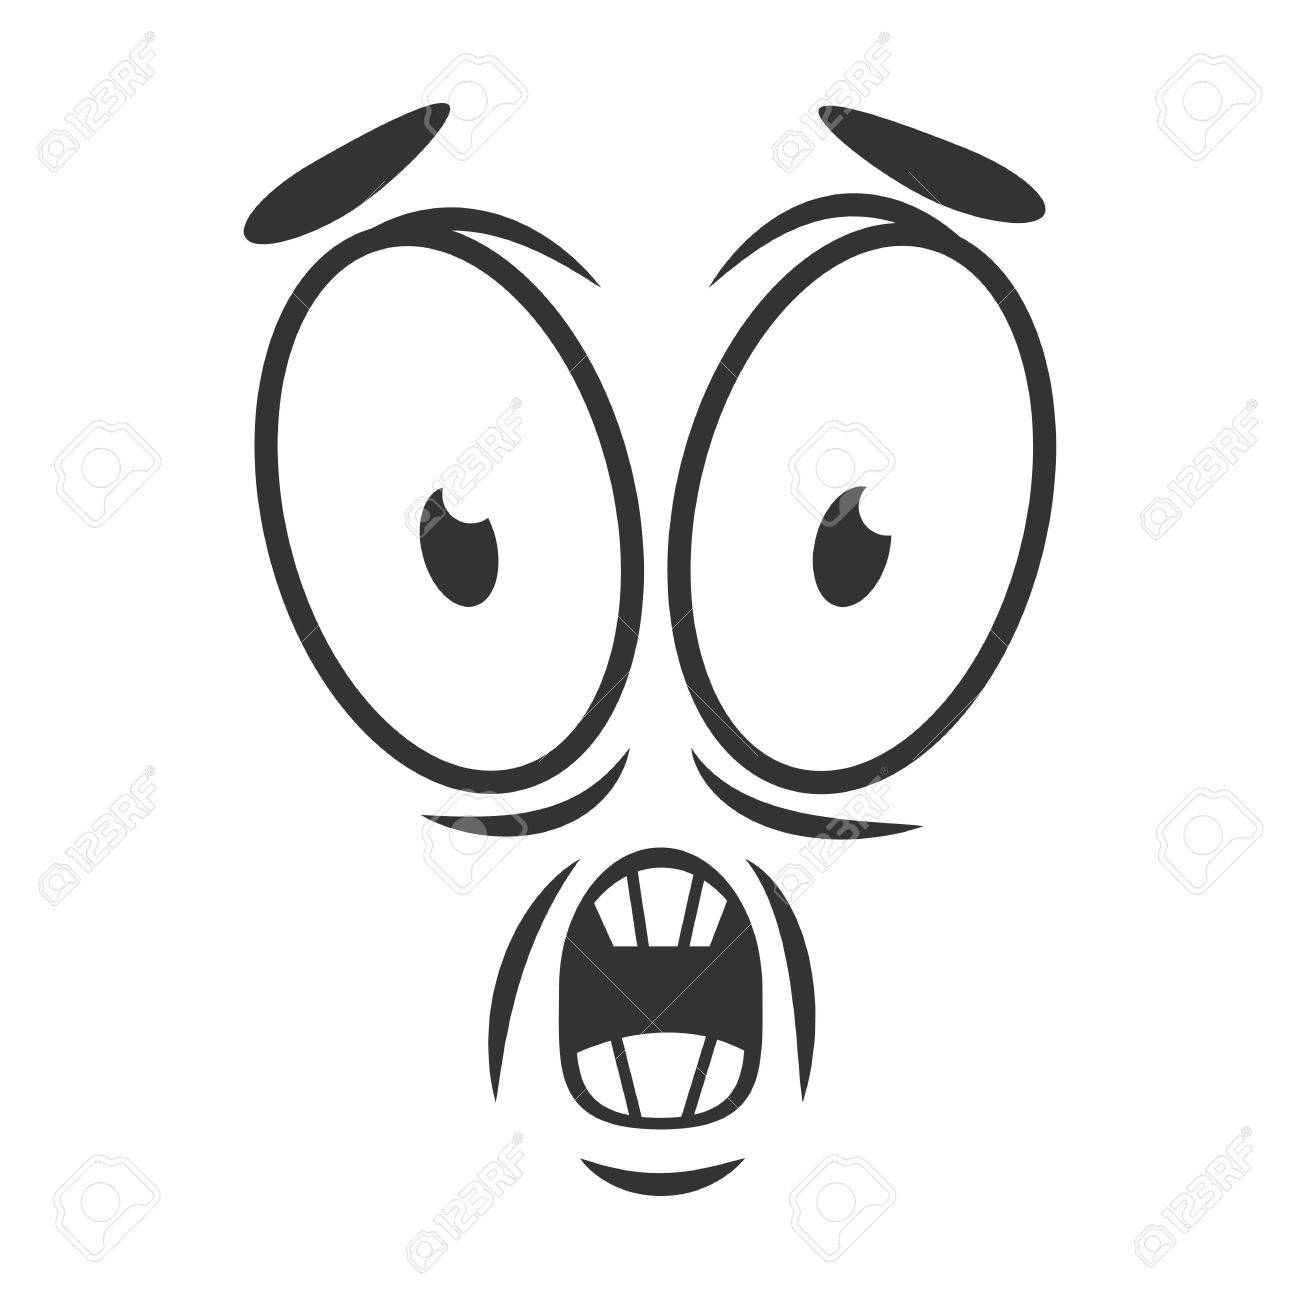 shocked emotion icon logo flat style simple horrify cartoon rh 123rf com Symbols for Apprehensive Apprehensive Person